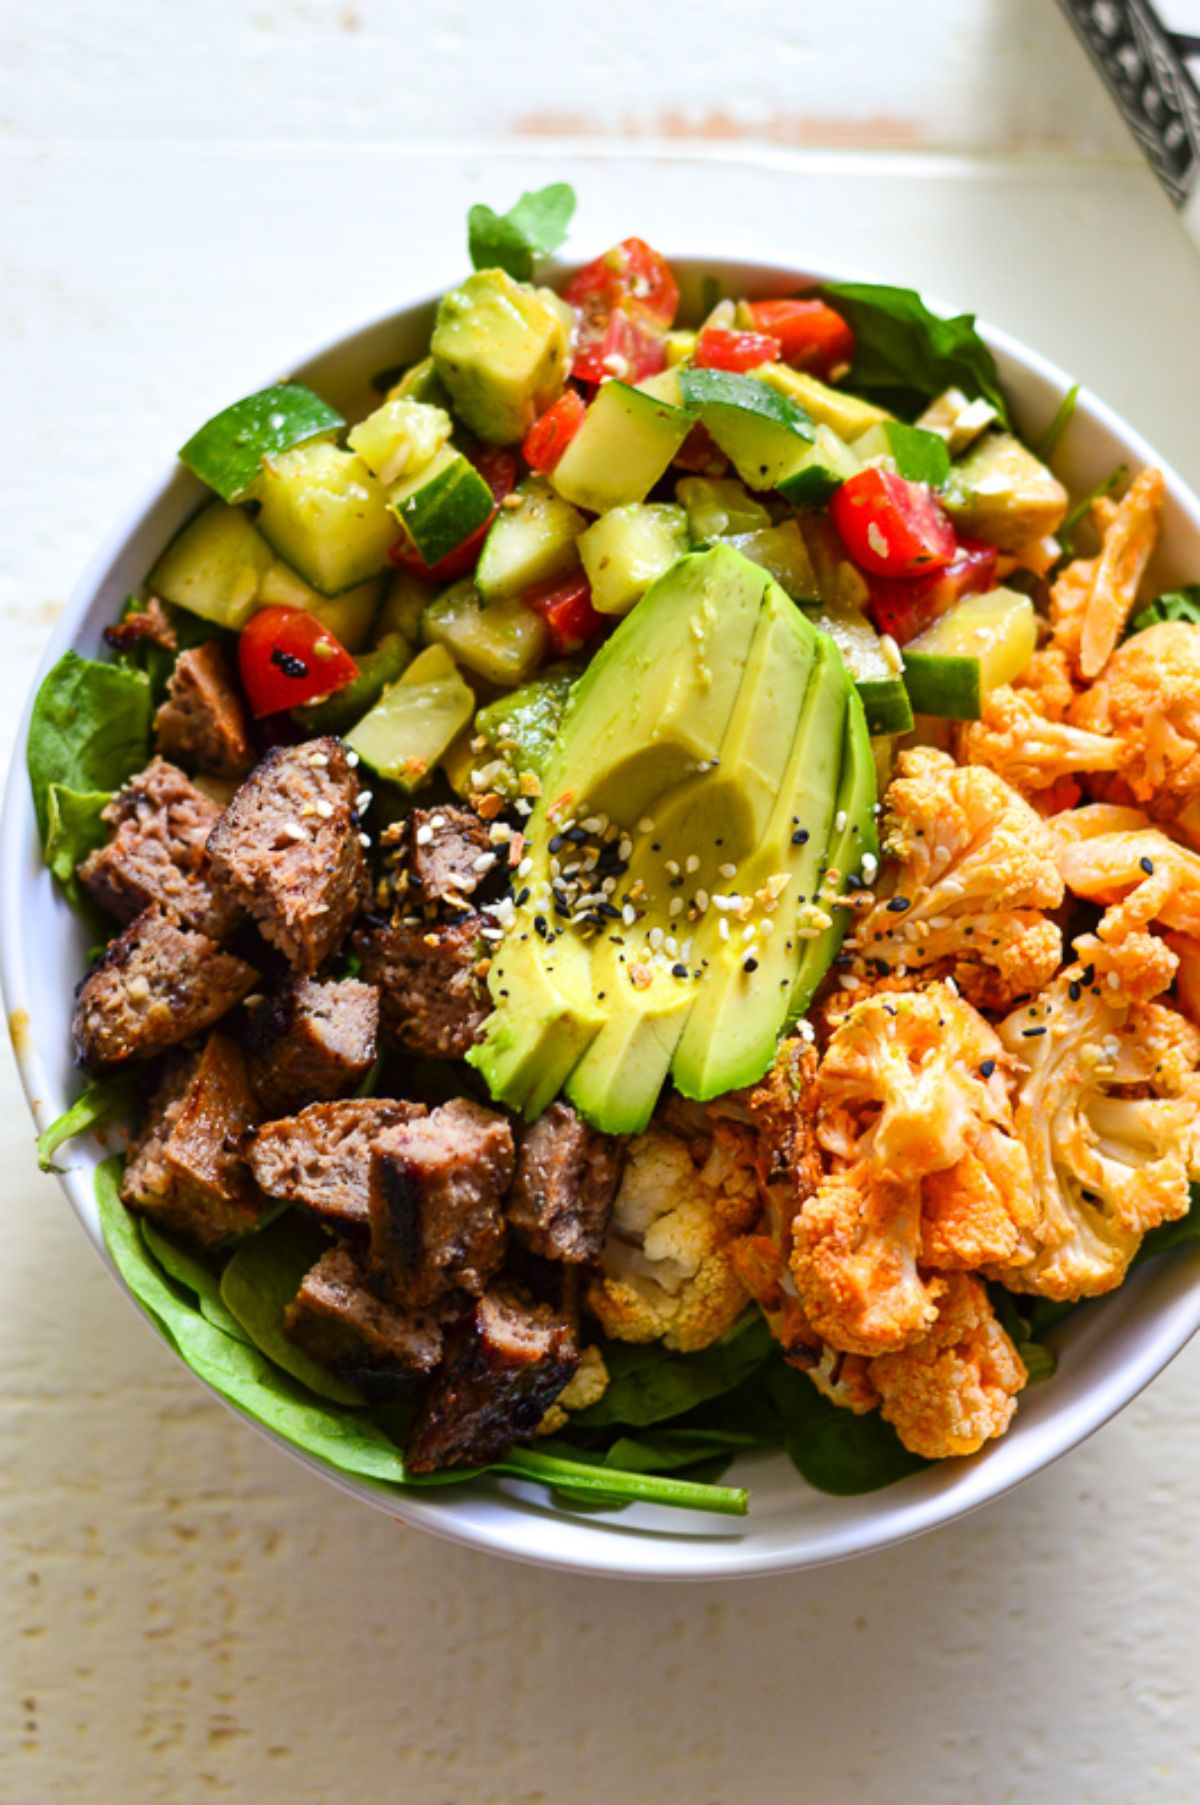 A white bowl of cauliflower, avocado, red meat and chopped salsa